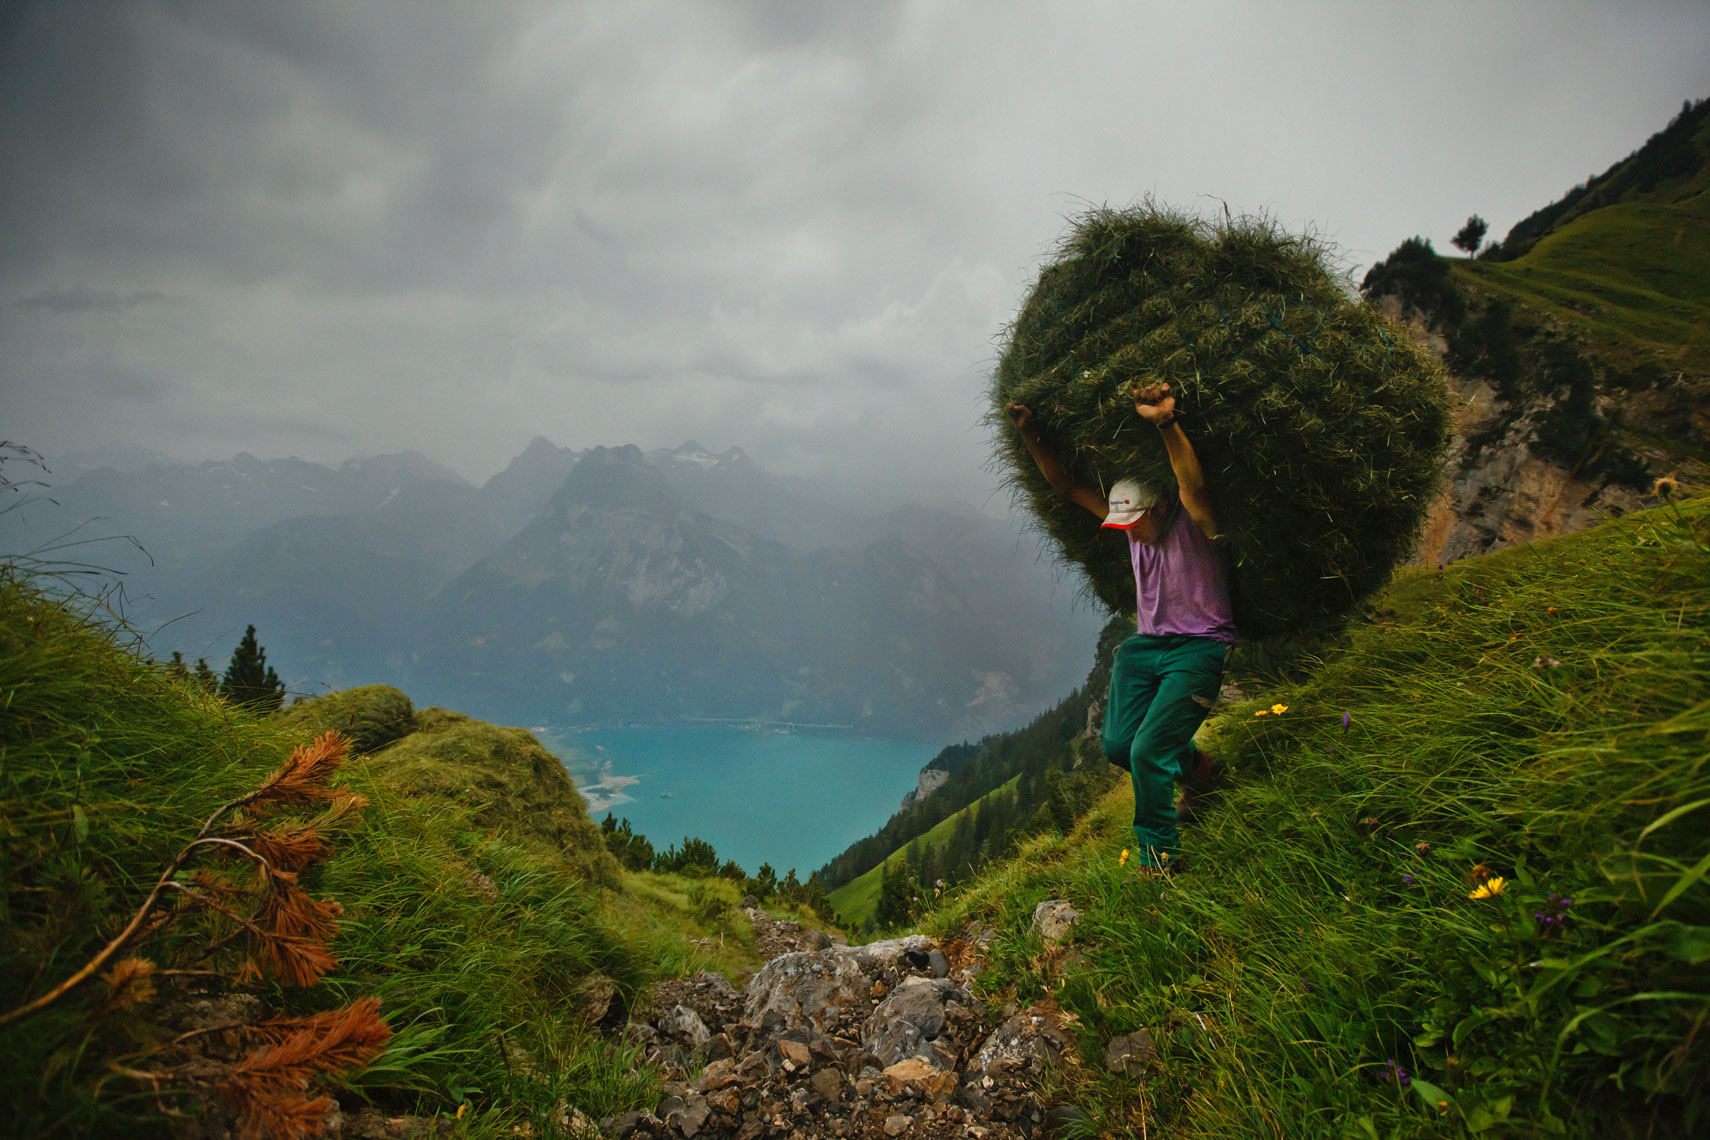 Mountain farmer Kari Gisler, for Reuters